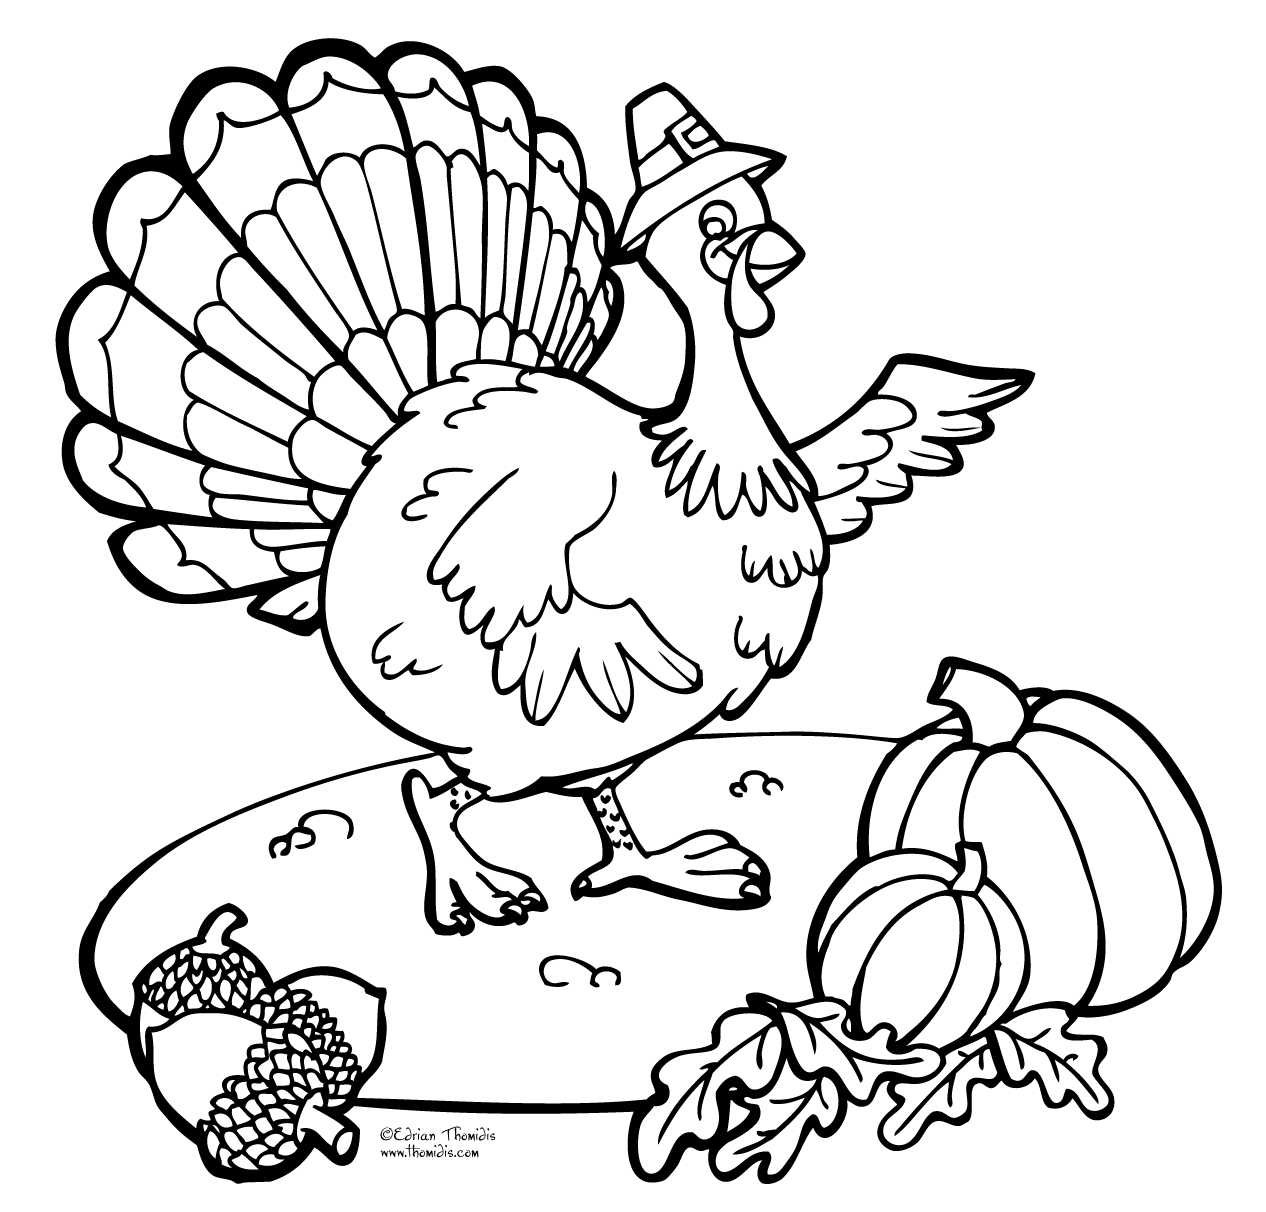 Free Thanksgiving Coloring Pages for Kids | Free thanksgiving coloring pages,  Fall coloring pages, Turkey coloring pages | 1212x1266